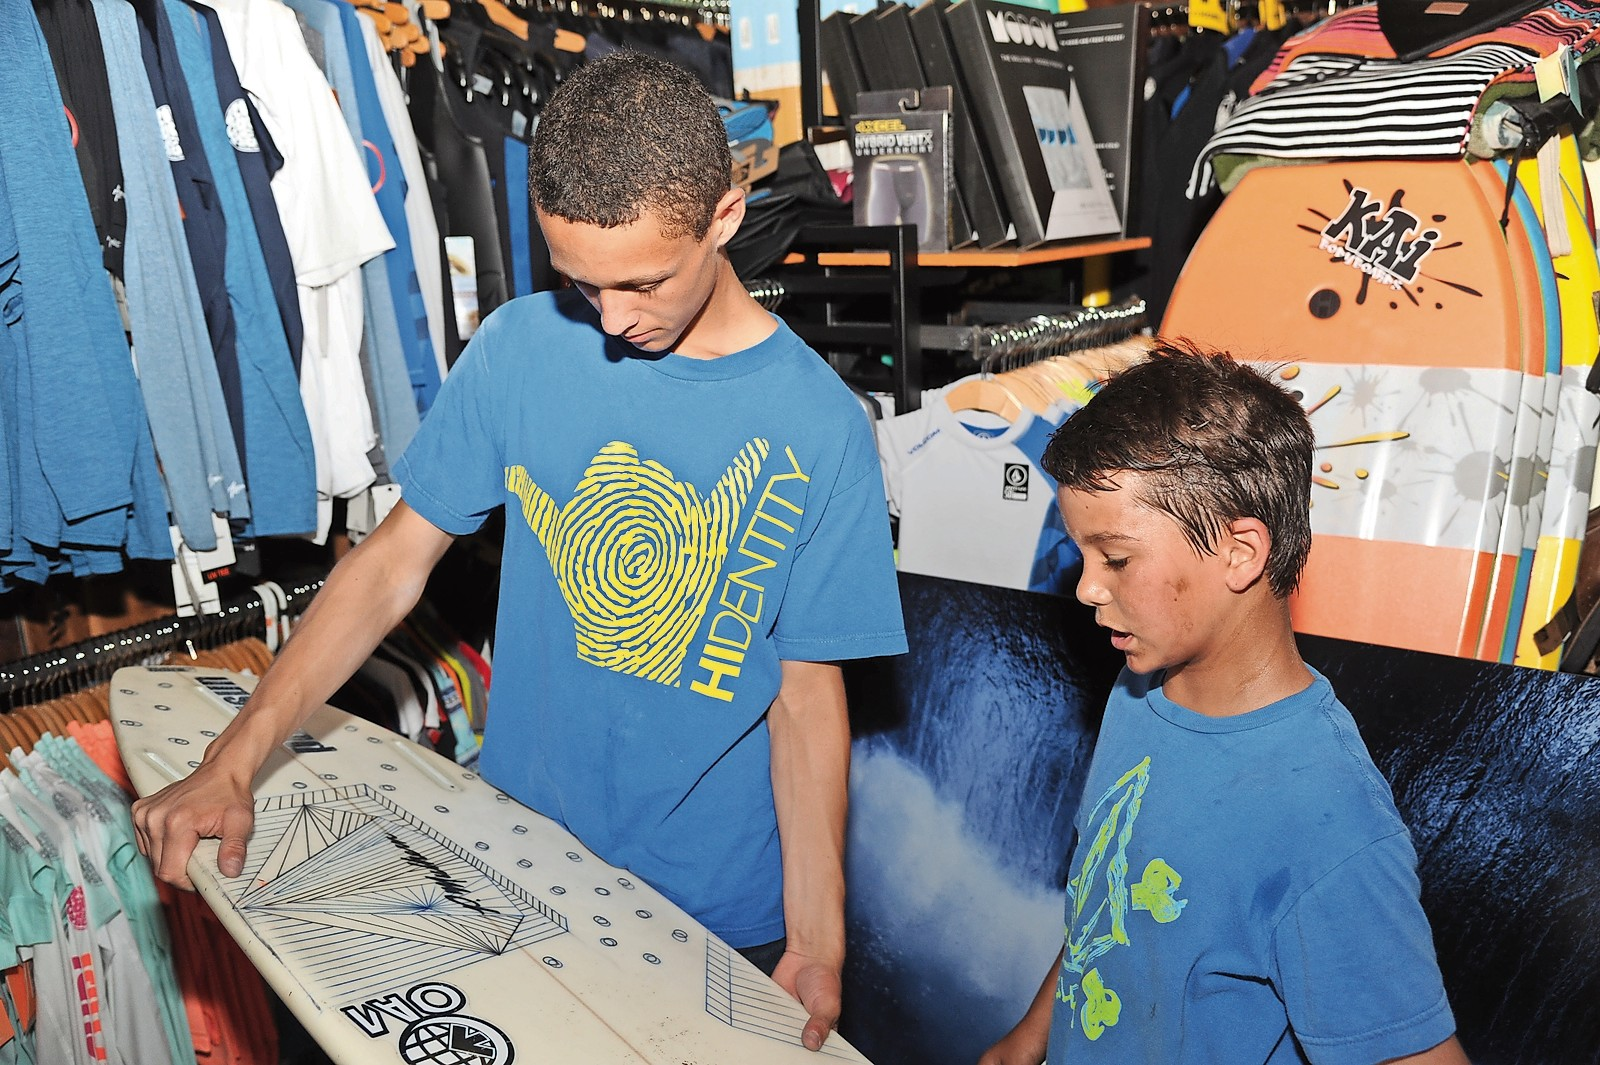 Ethan Grassini, 14, and Caleb Kallelis, 8, checked out a surfboard.